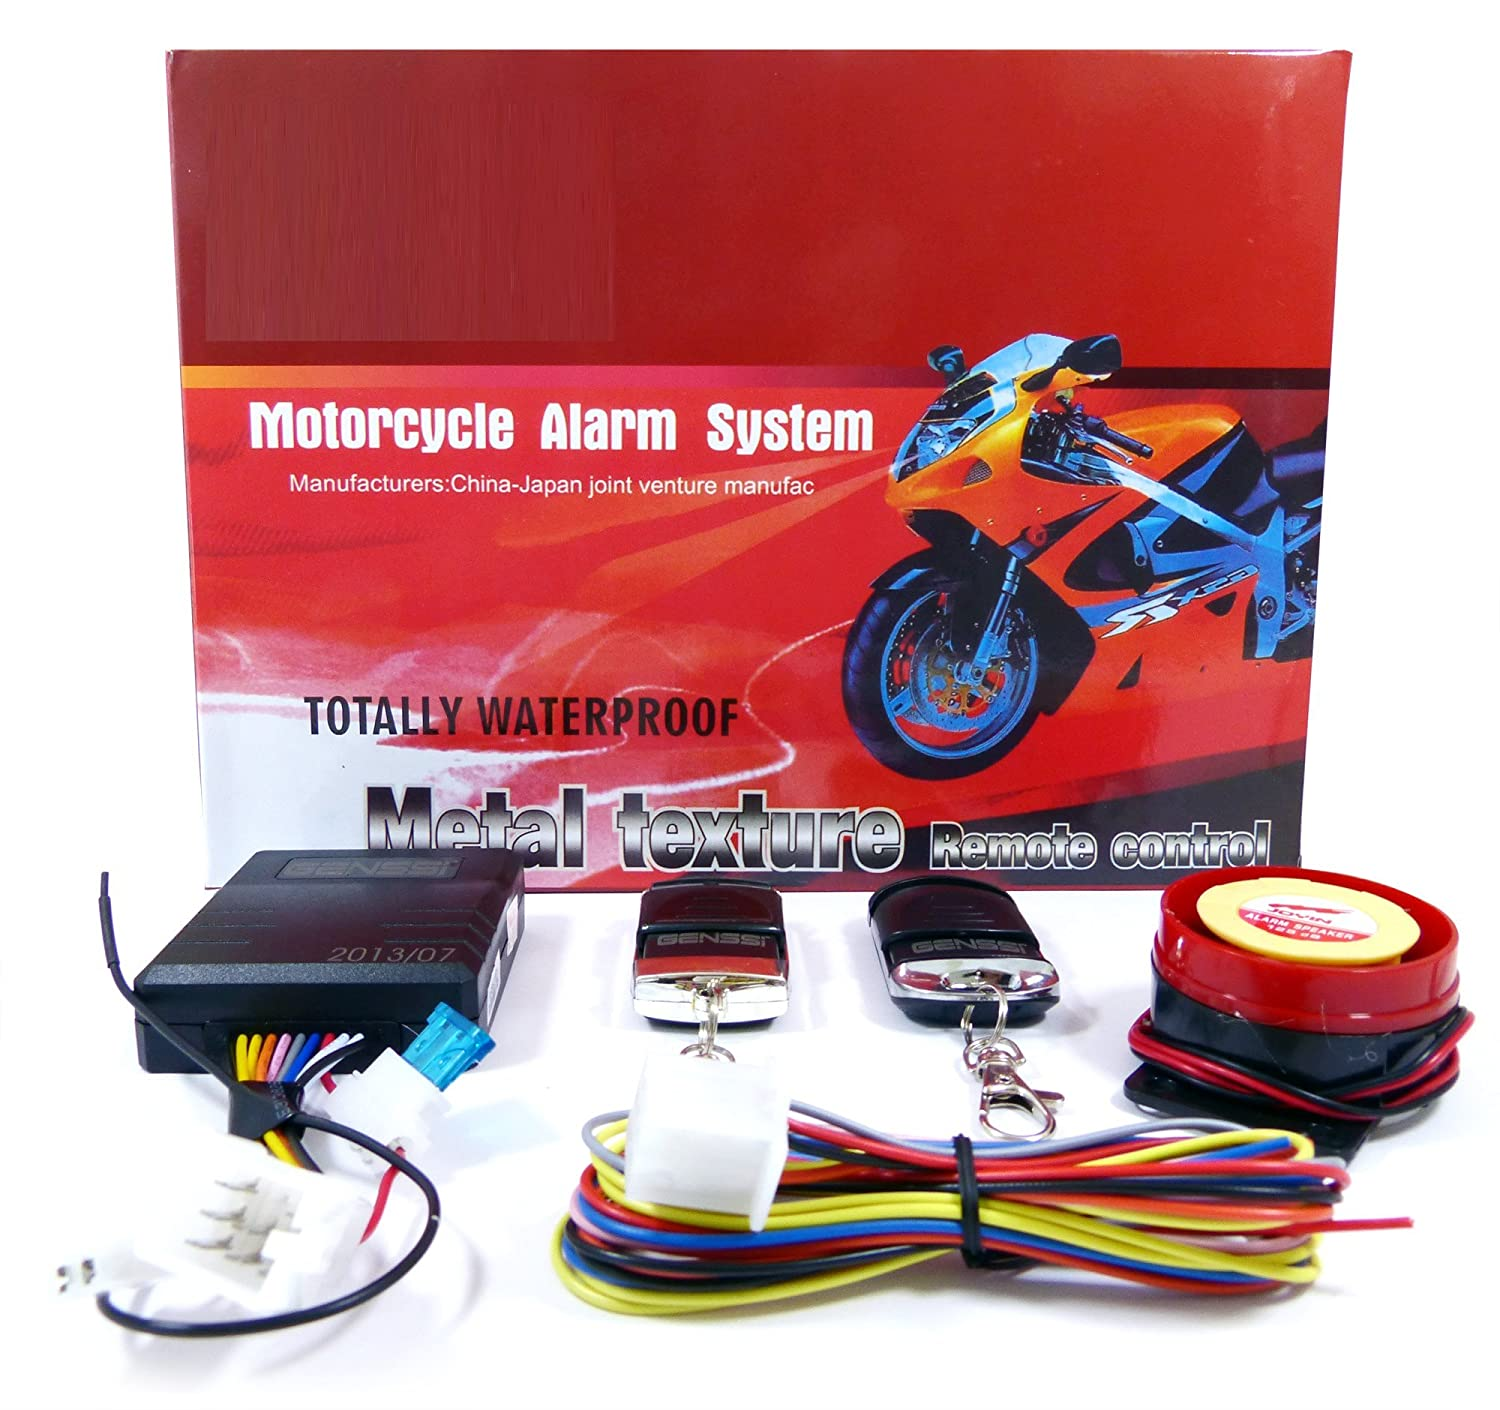 Basic Motorcycle Alarm Security System With 2 Remote Car Alarms Aftermarket W Kill Switch Harness Key Controls Siren Mp3 Players Accessories